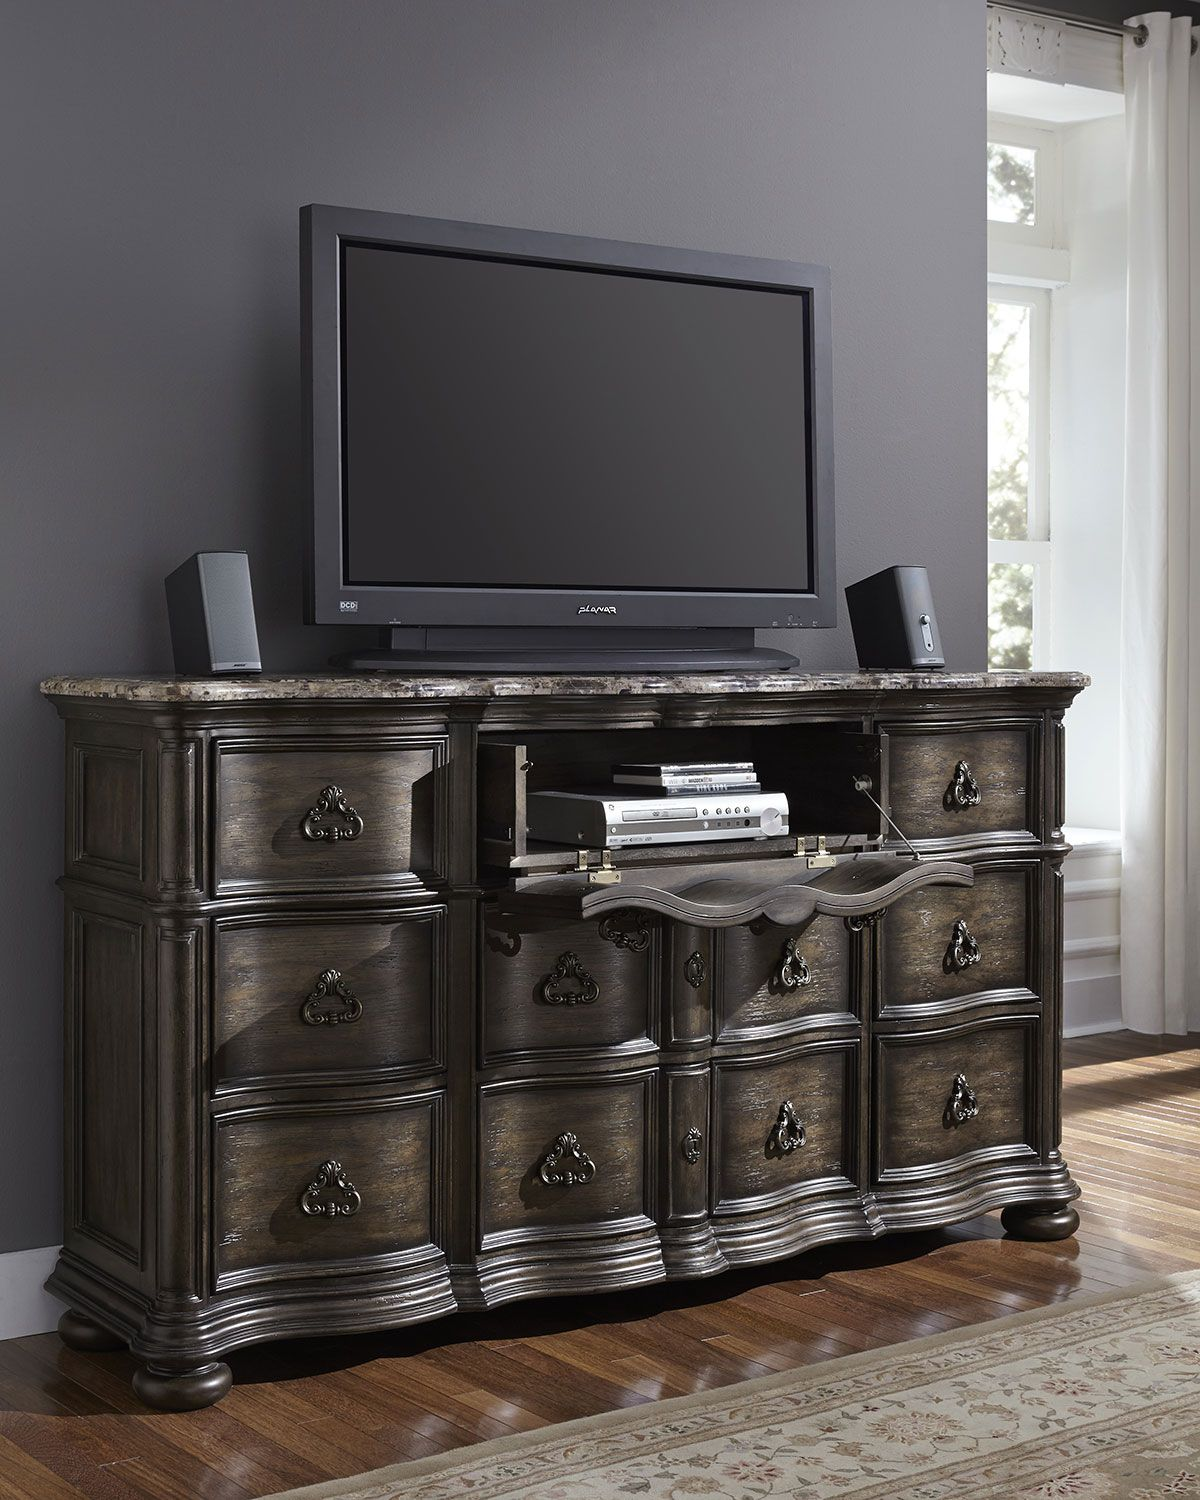 Hathaway poster bedroom furniture home sweet home pinterest